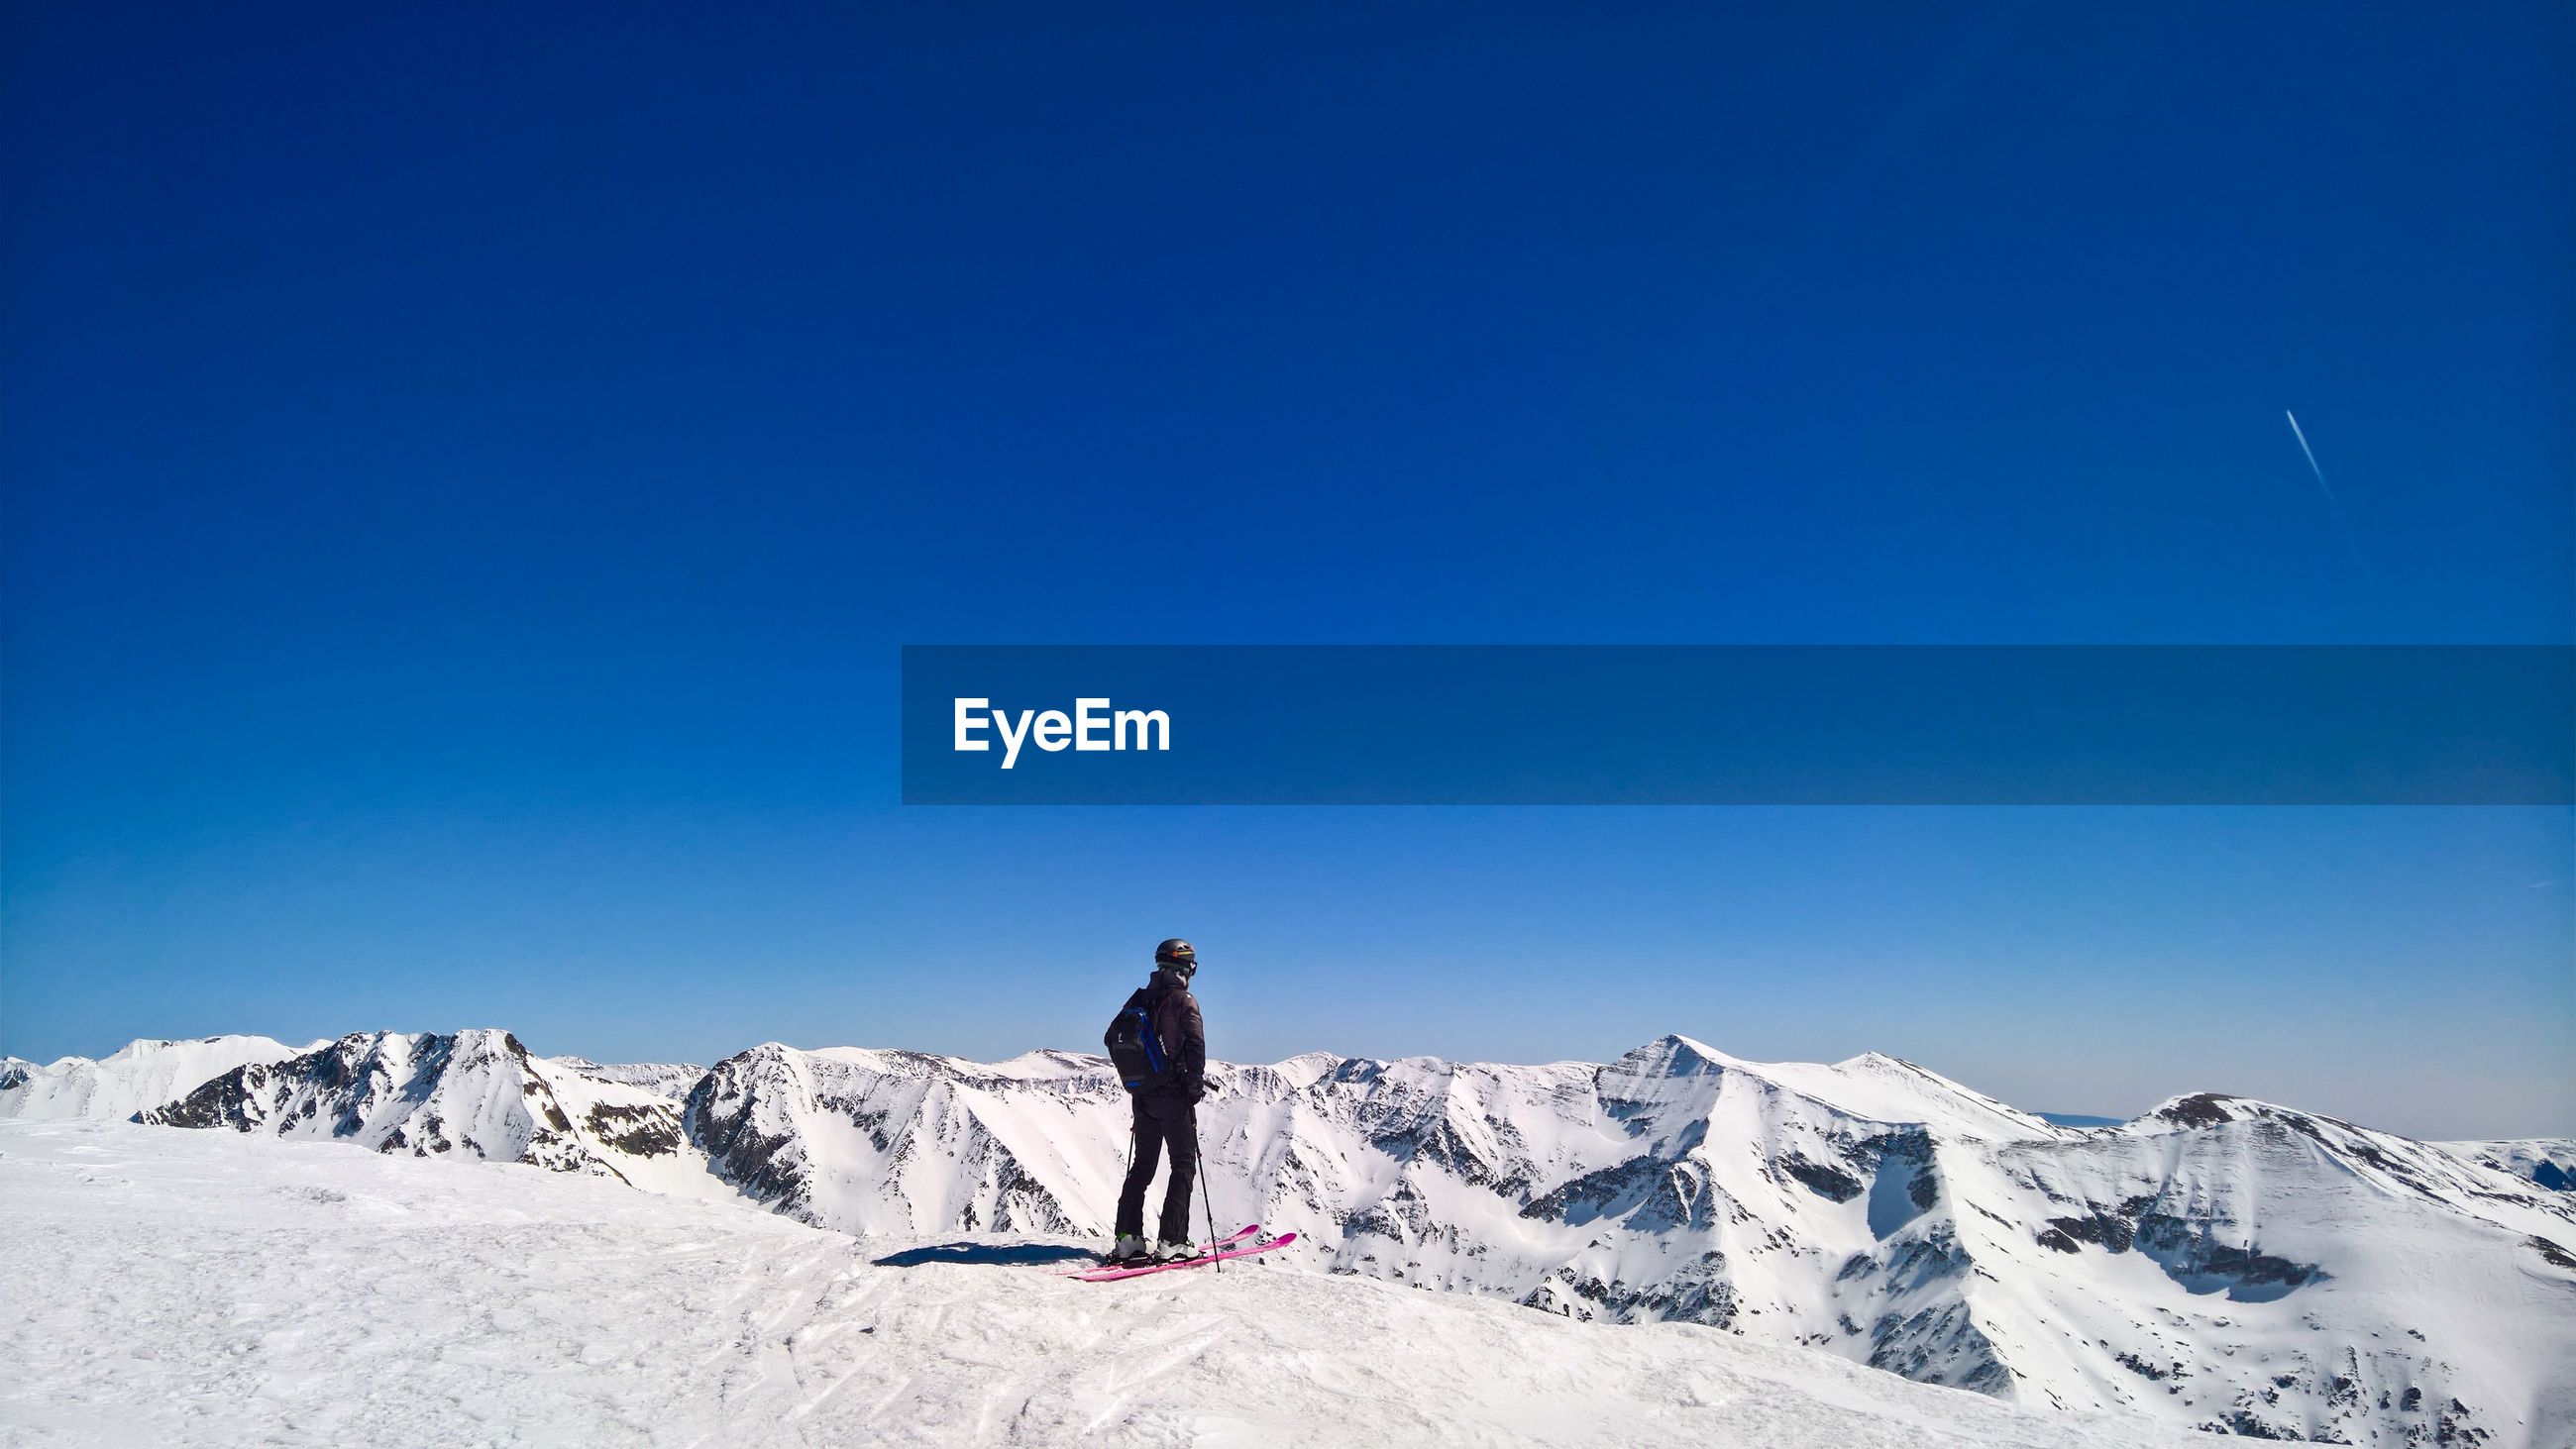 Man standing on snowcapped mountain against clear blue sky